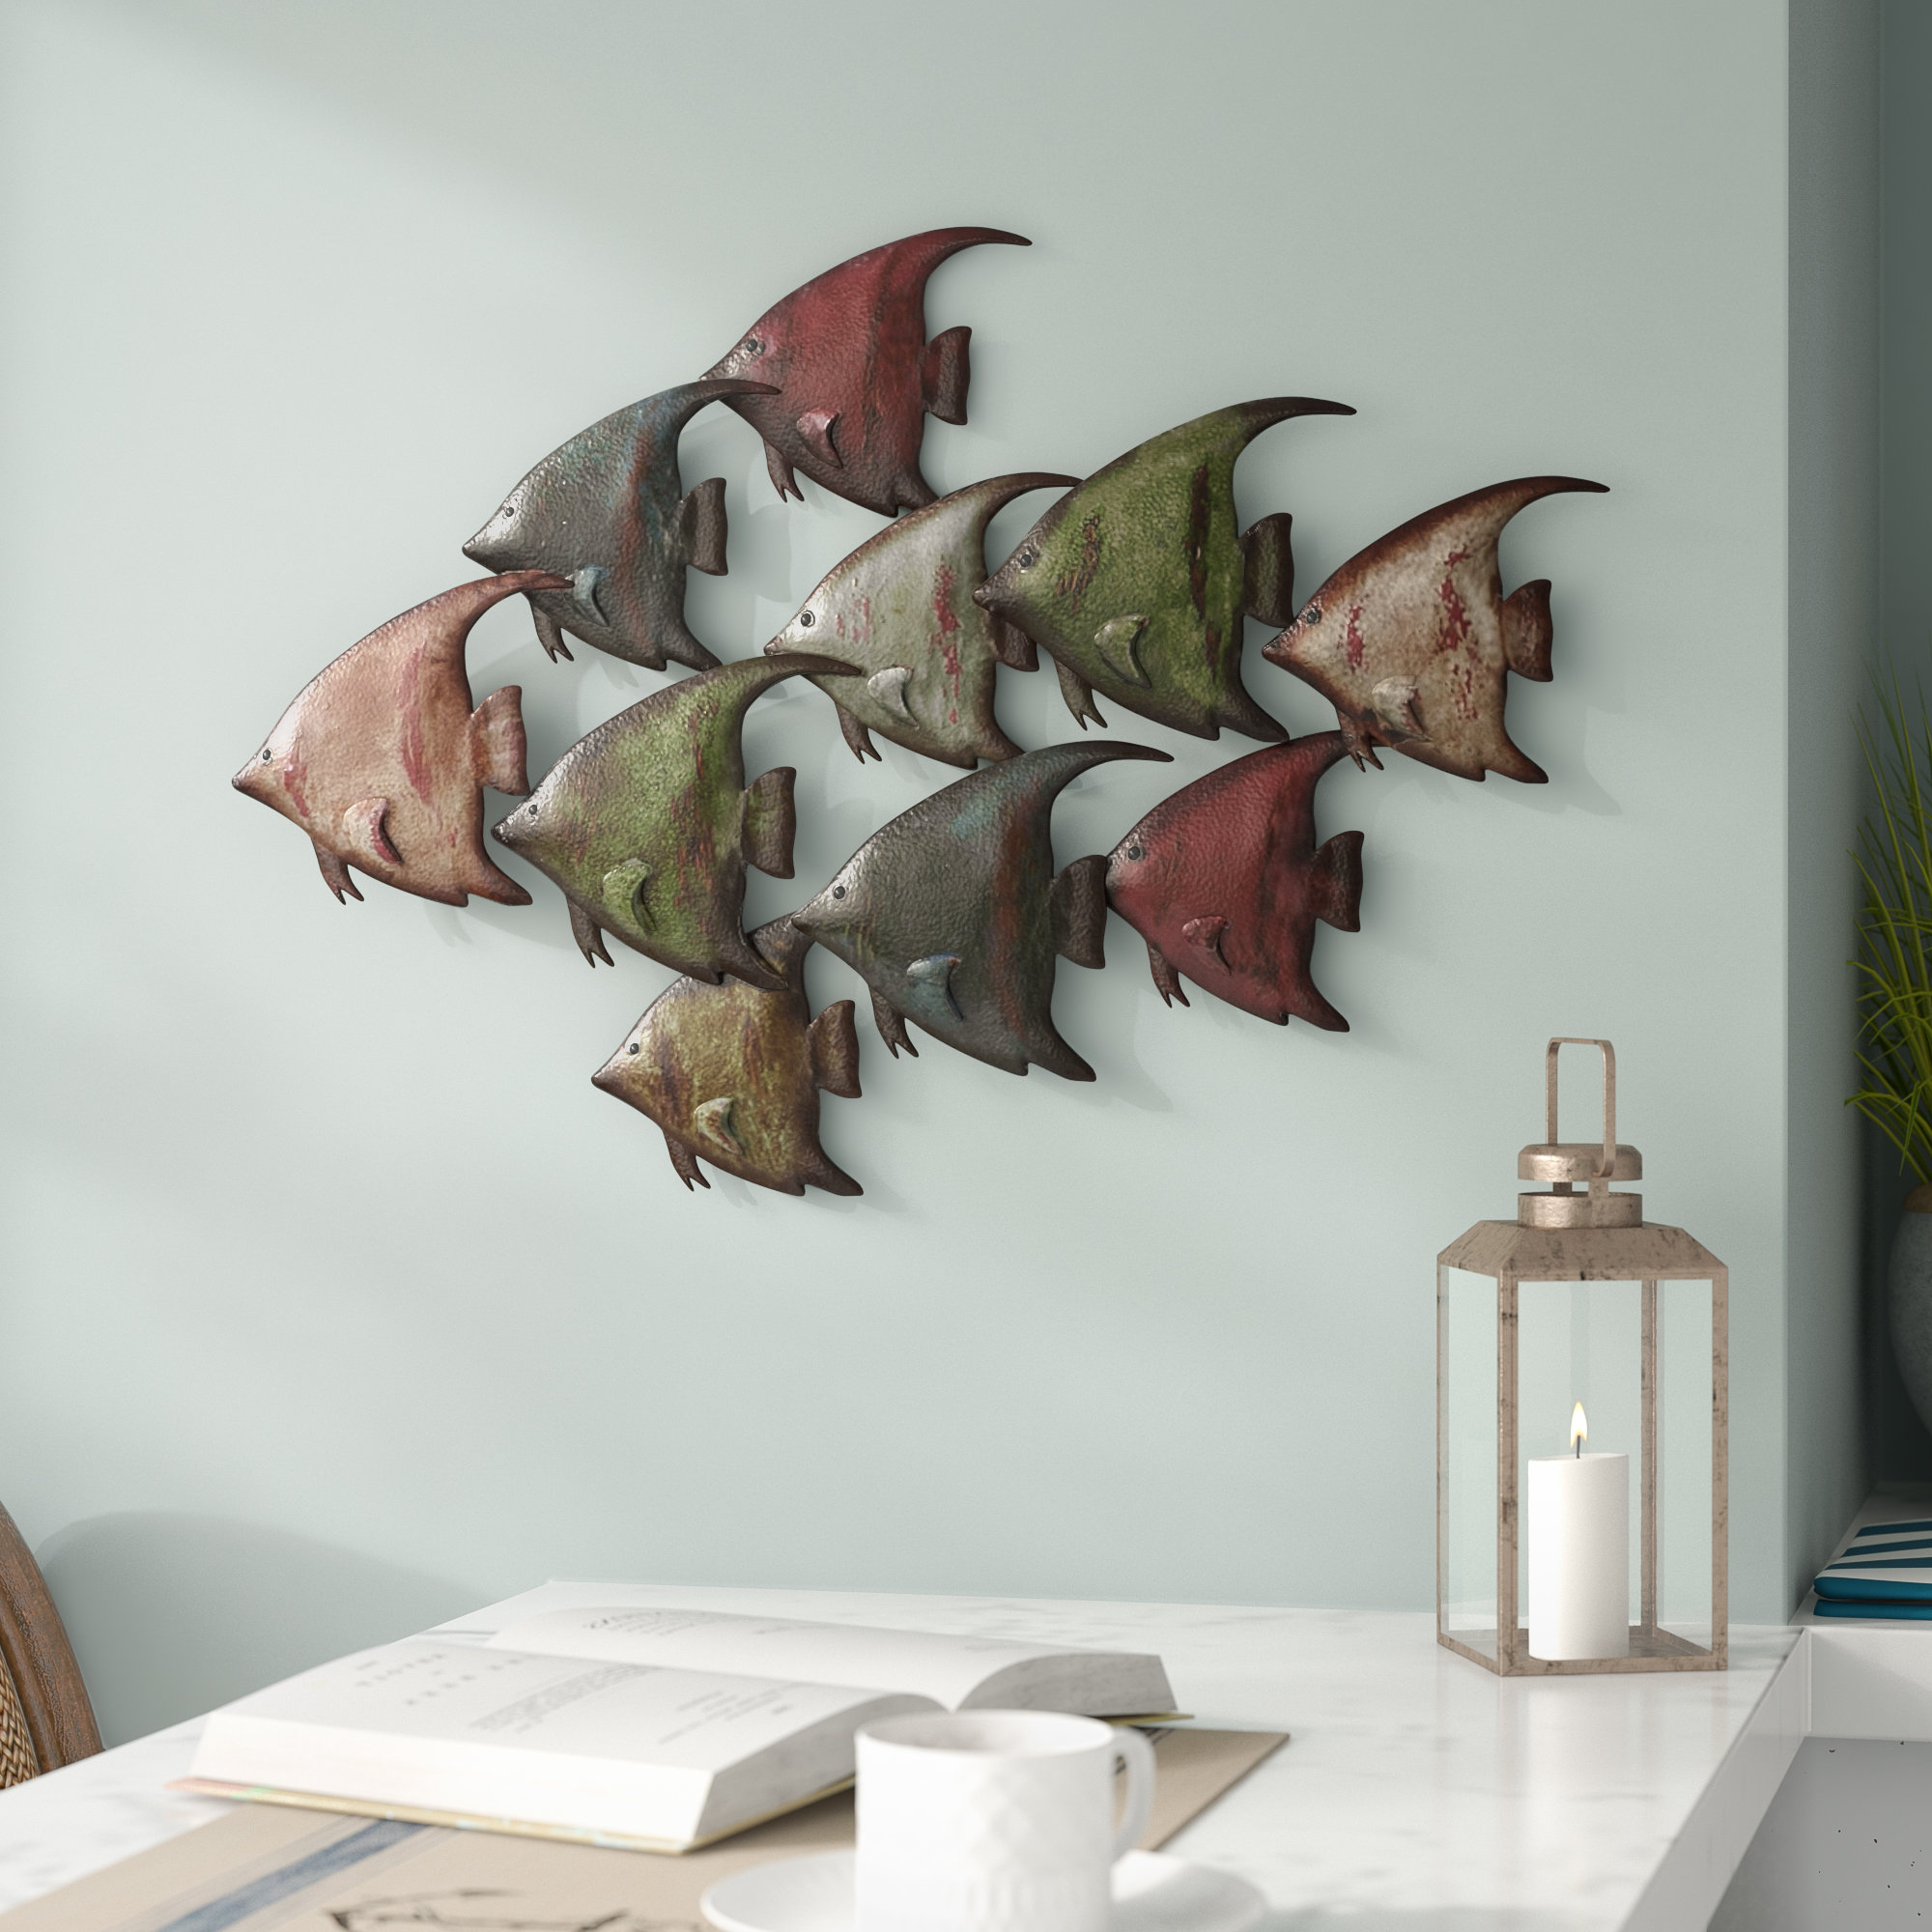 Wayfair Inside Coastal Metal Fish Wall Decor (View 2 of 20)